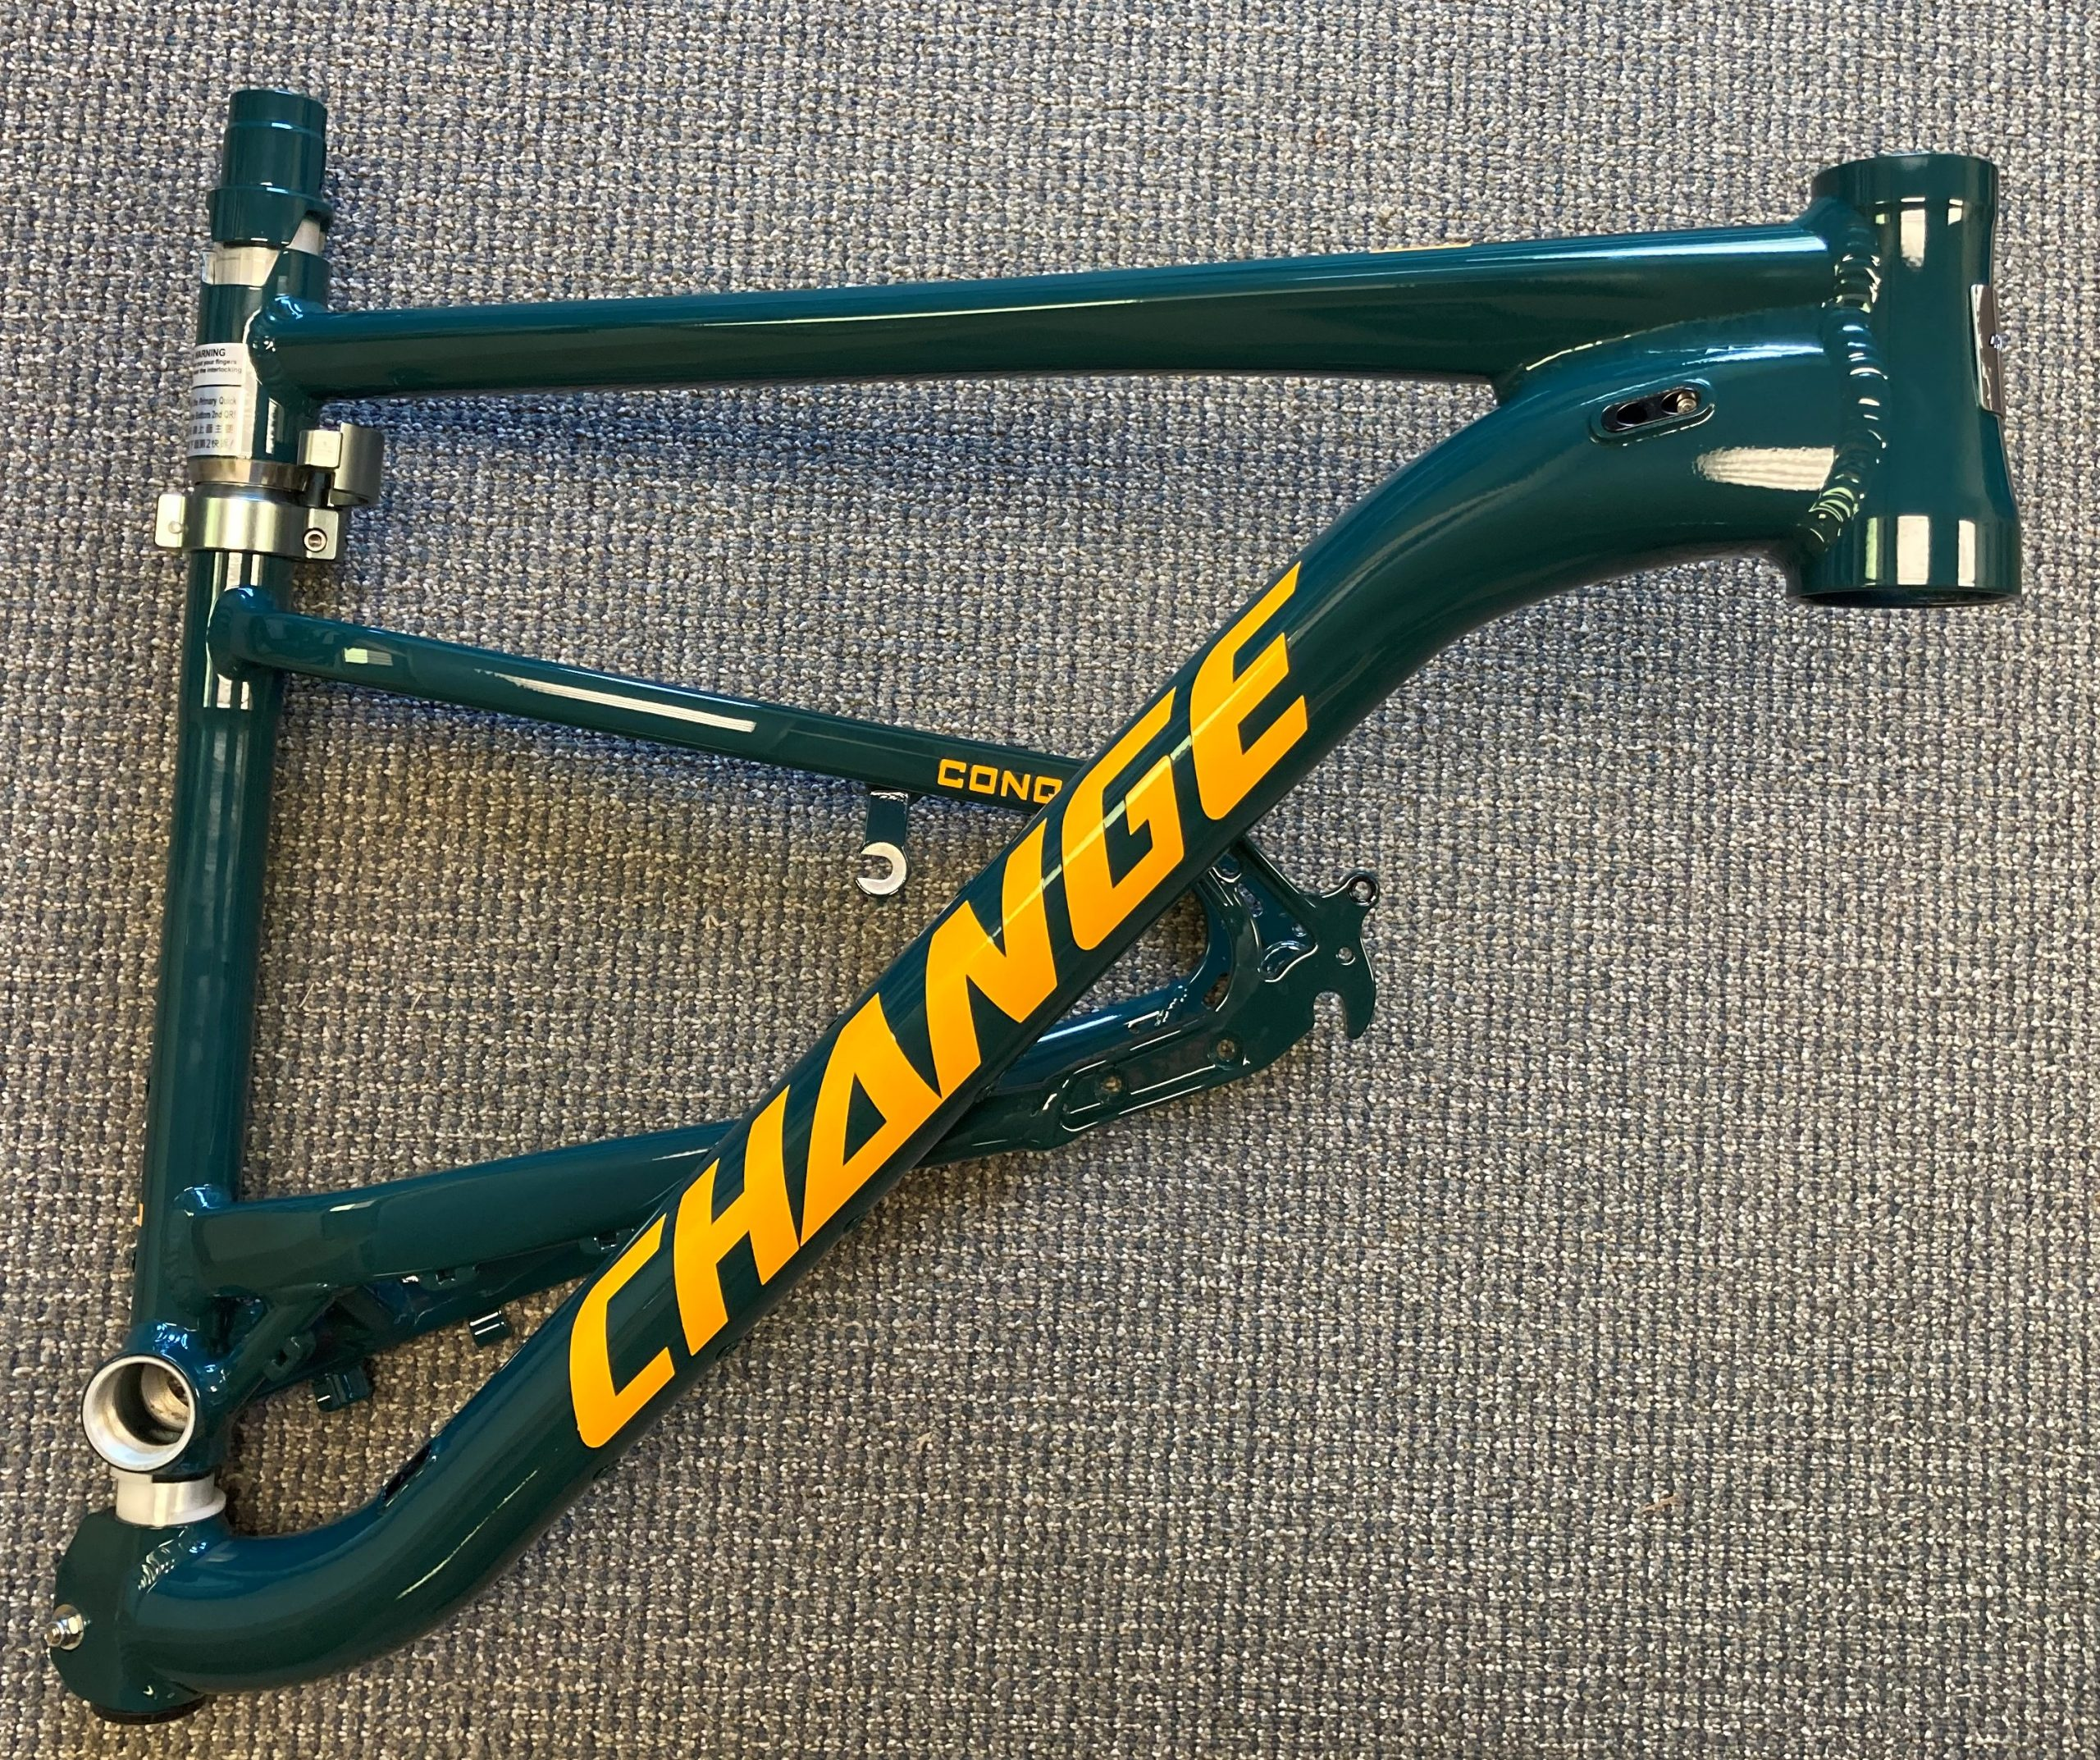 Change 833 frame folded